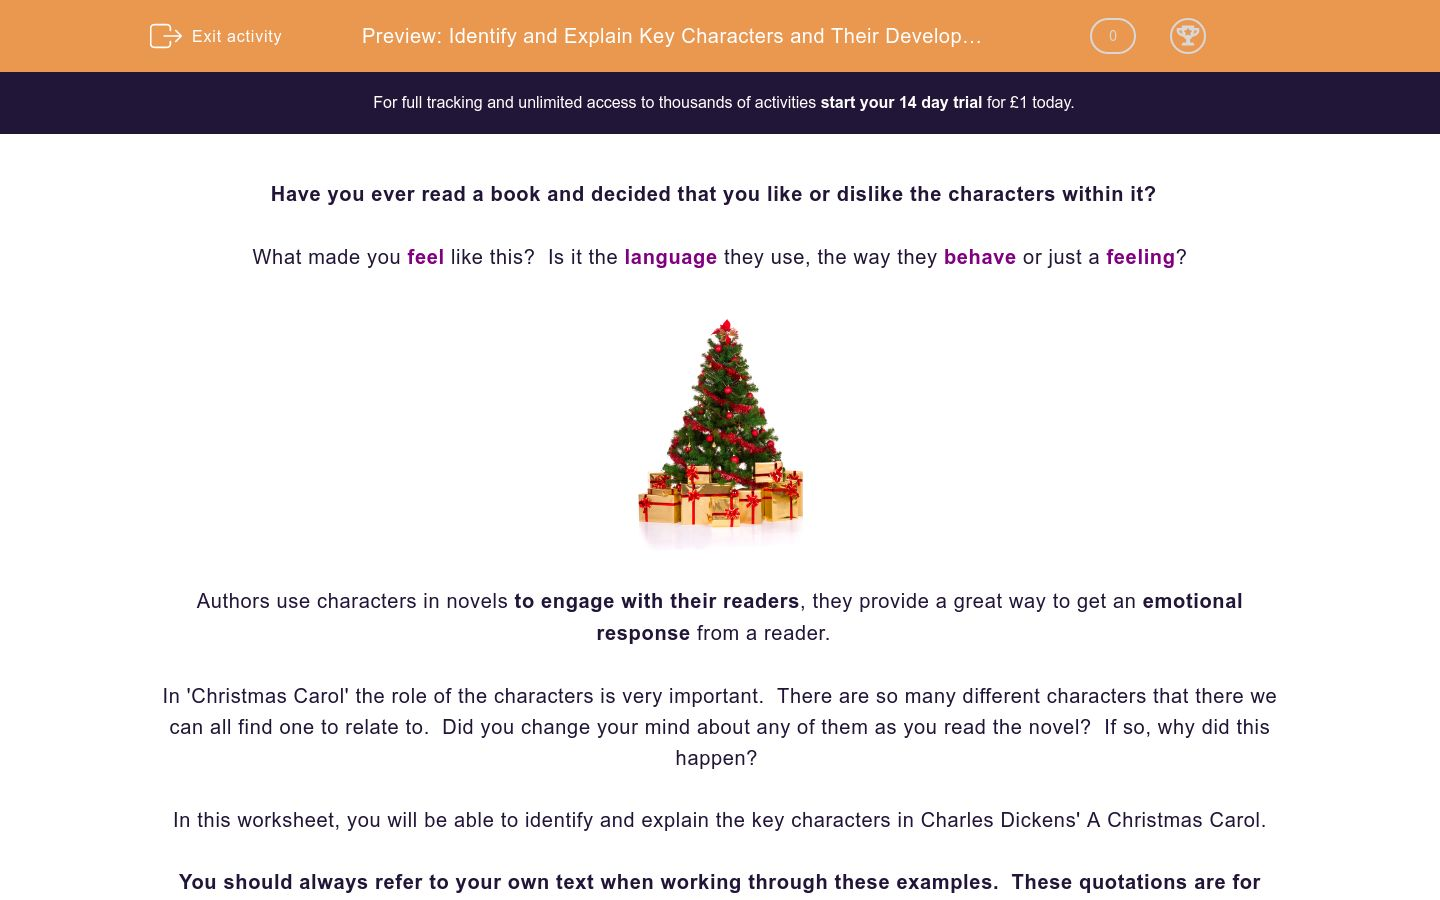 'Identify and Explain Key Characters and Their Development in 'A Christmas Carol'' worksheet